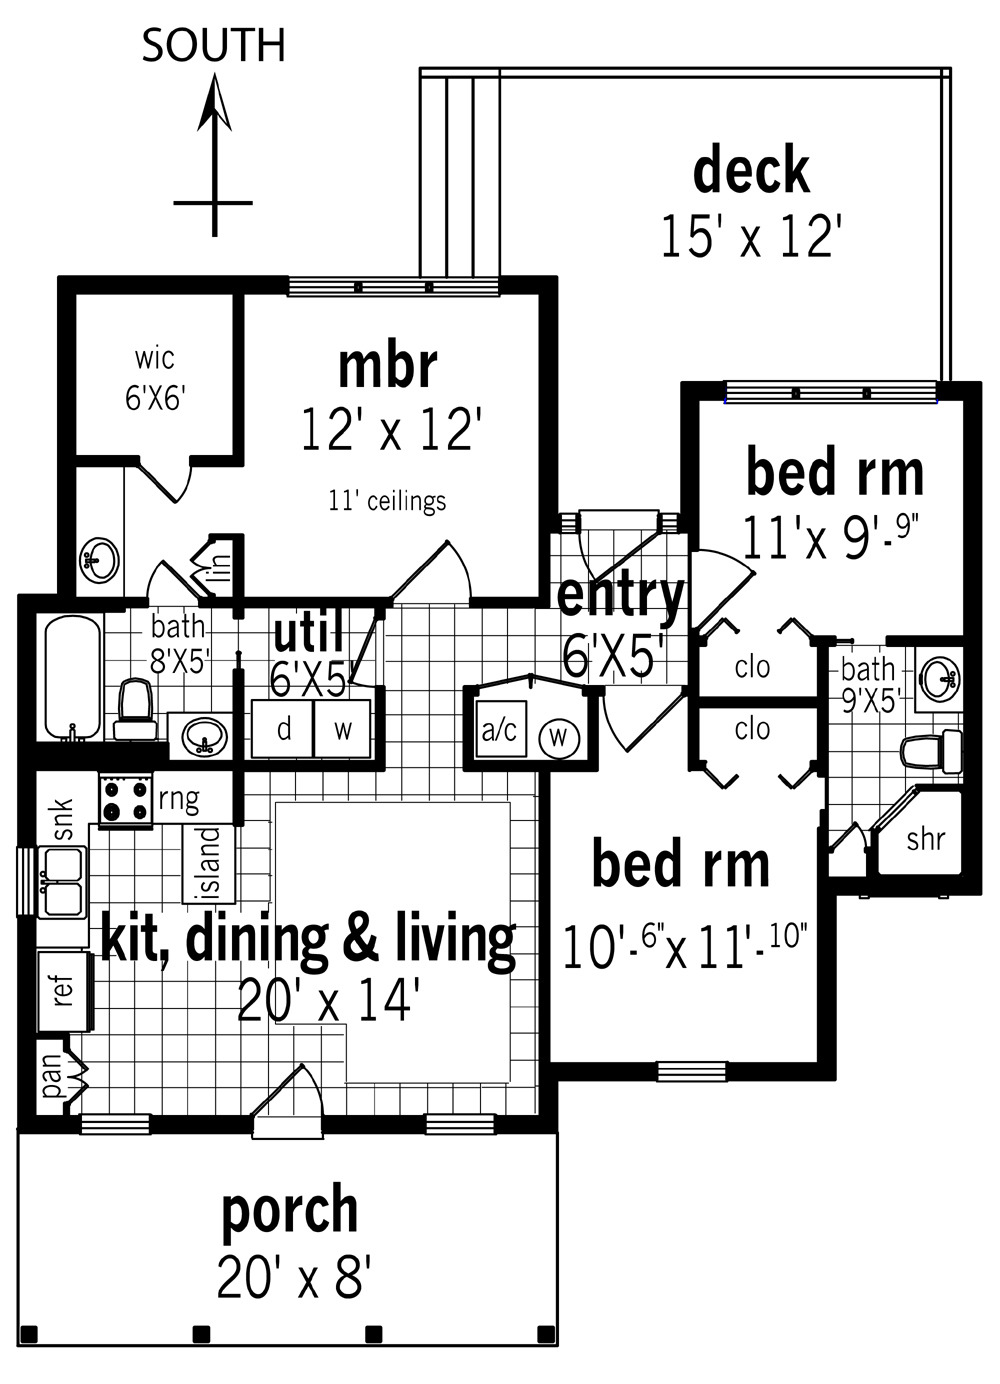 Open Floor Plan House Plans with Photos Inspirational Cottage House Plan with 3 Bedrooms and 2 5 Baths Plan 3162